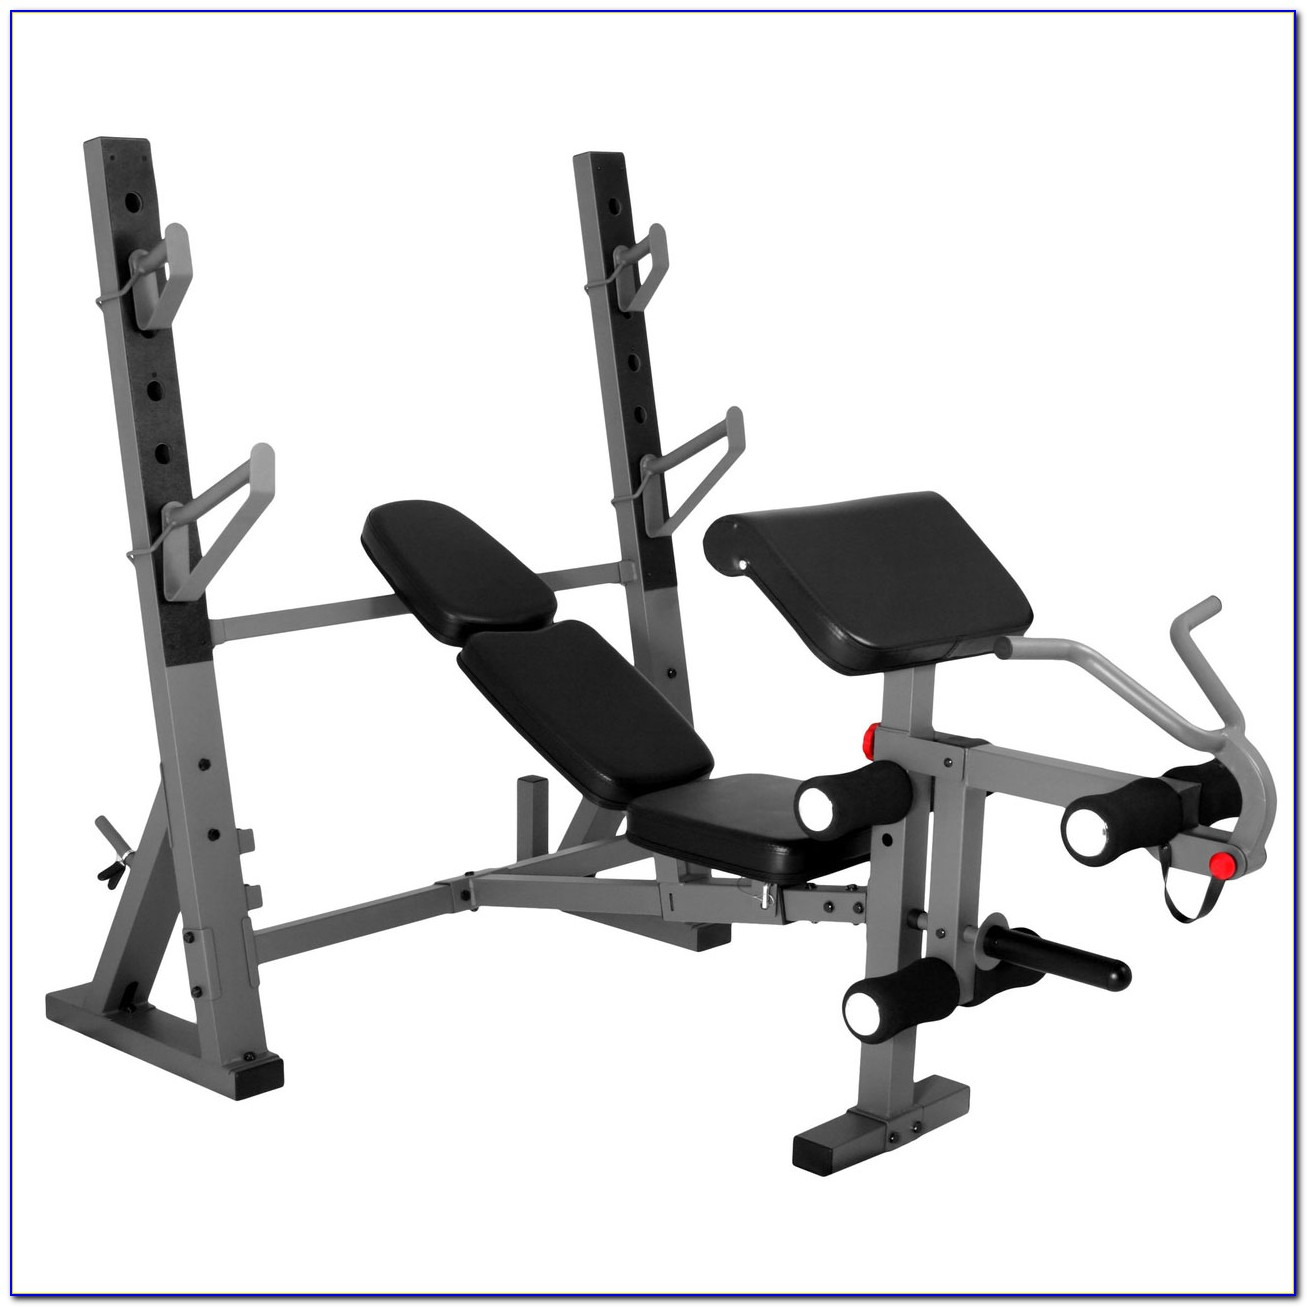 Weight Bench With Preacher Curl Attachment